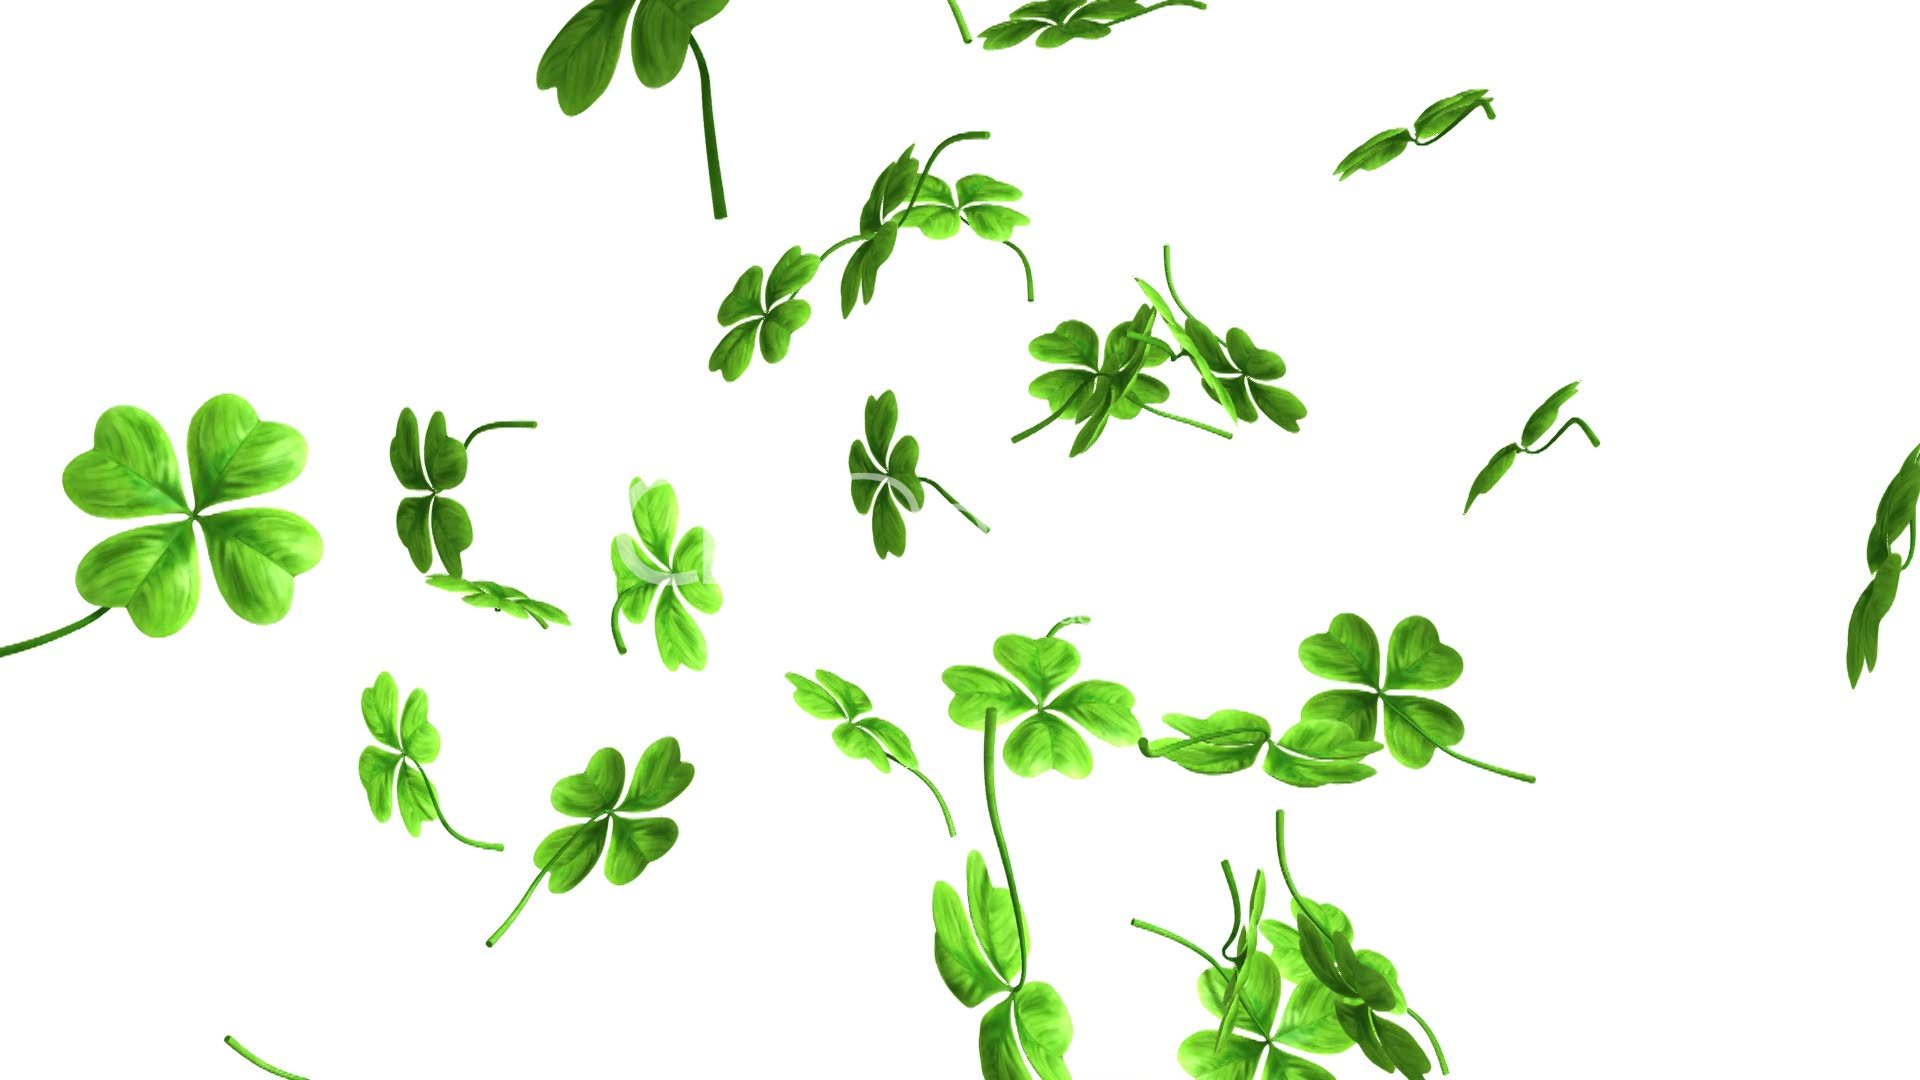 3d Shamrock Wallpaper Falling Shamrock Leaves Royalty Free Video And Stock Footage